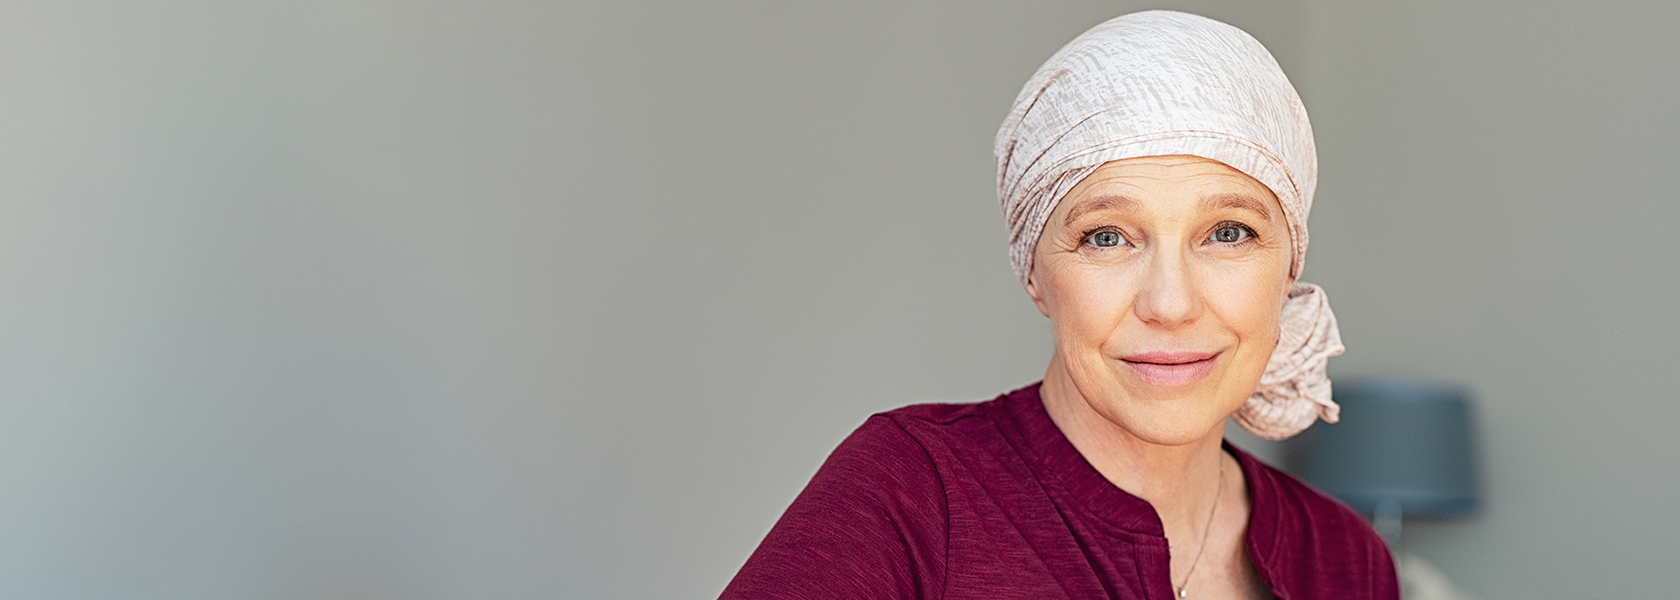 Image of woman battling cancer